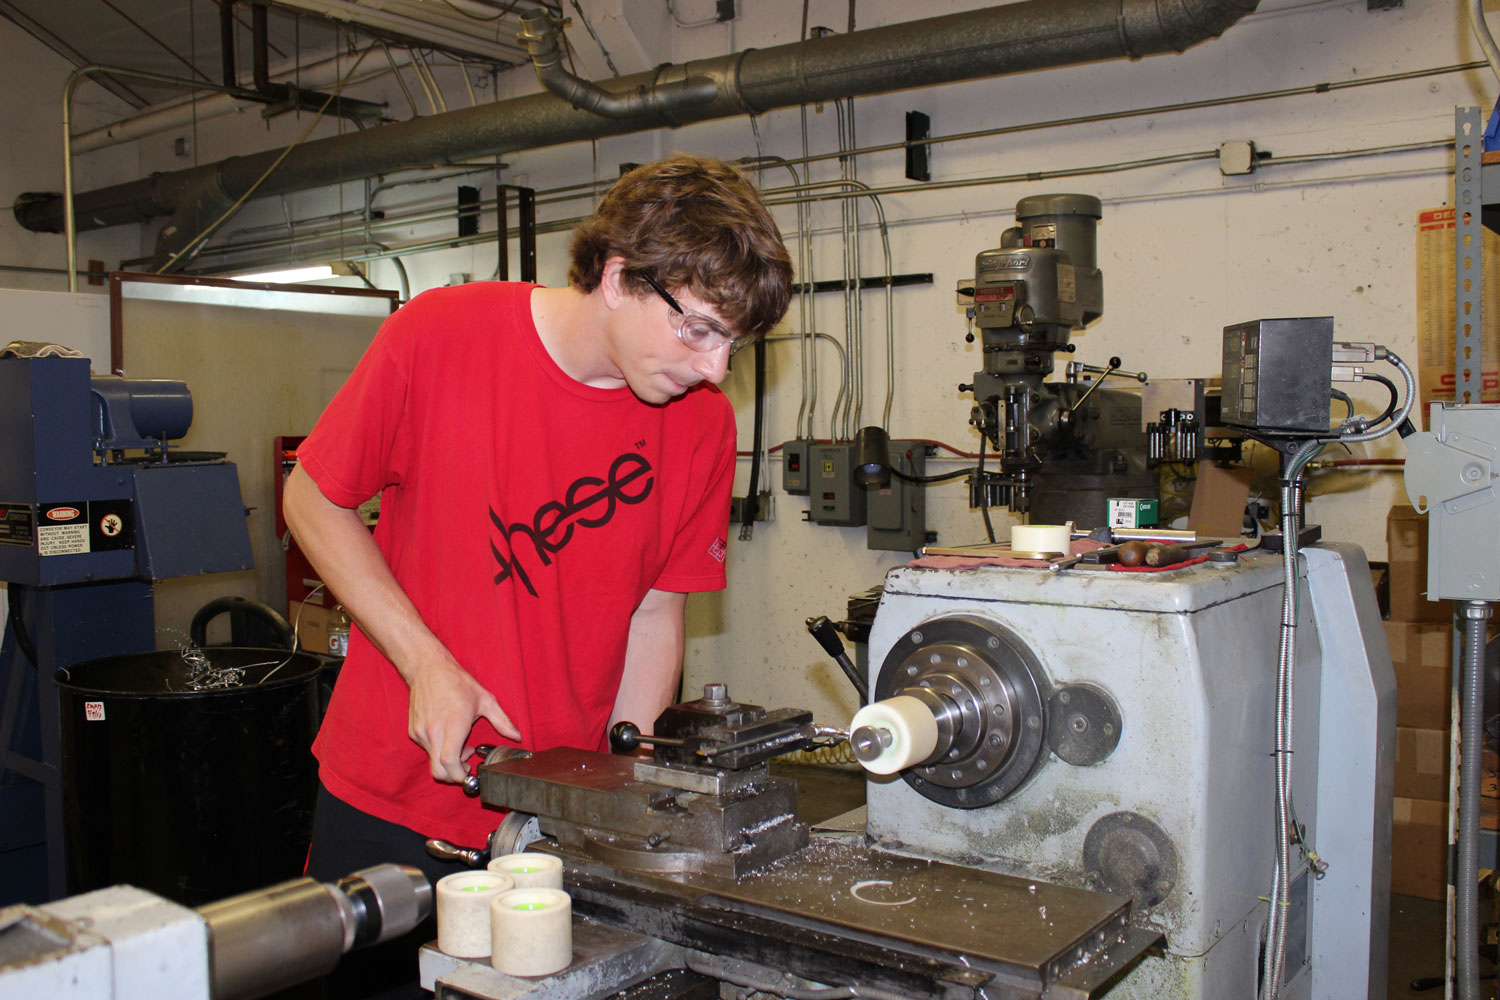 Kevin Reimer on the Lathe